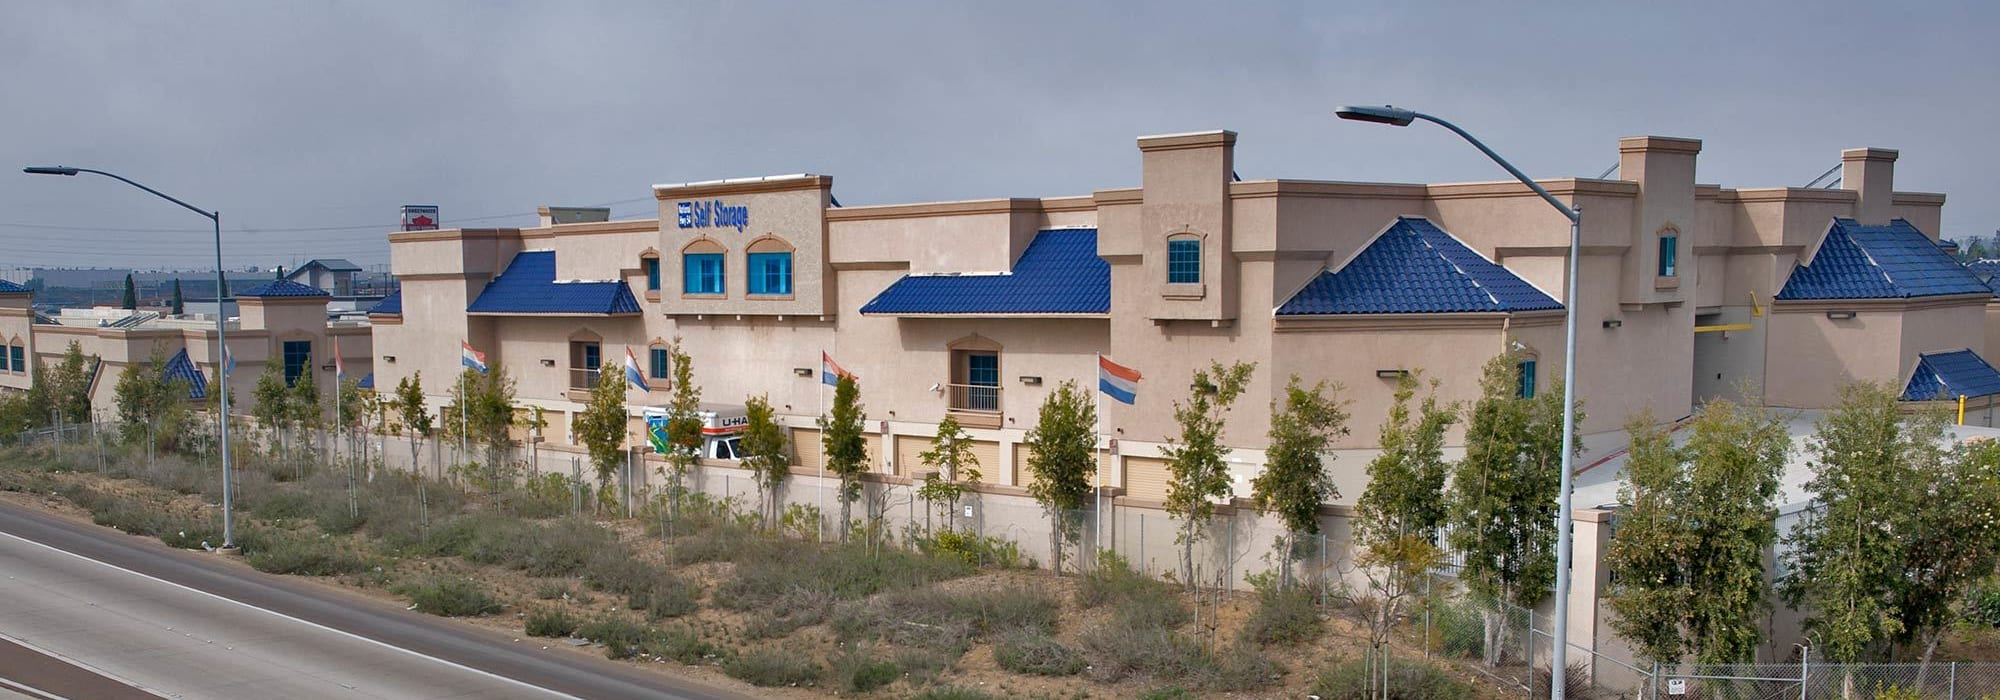 Branding on the exterior of National/54 Self Storage in National City, California